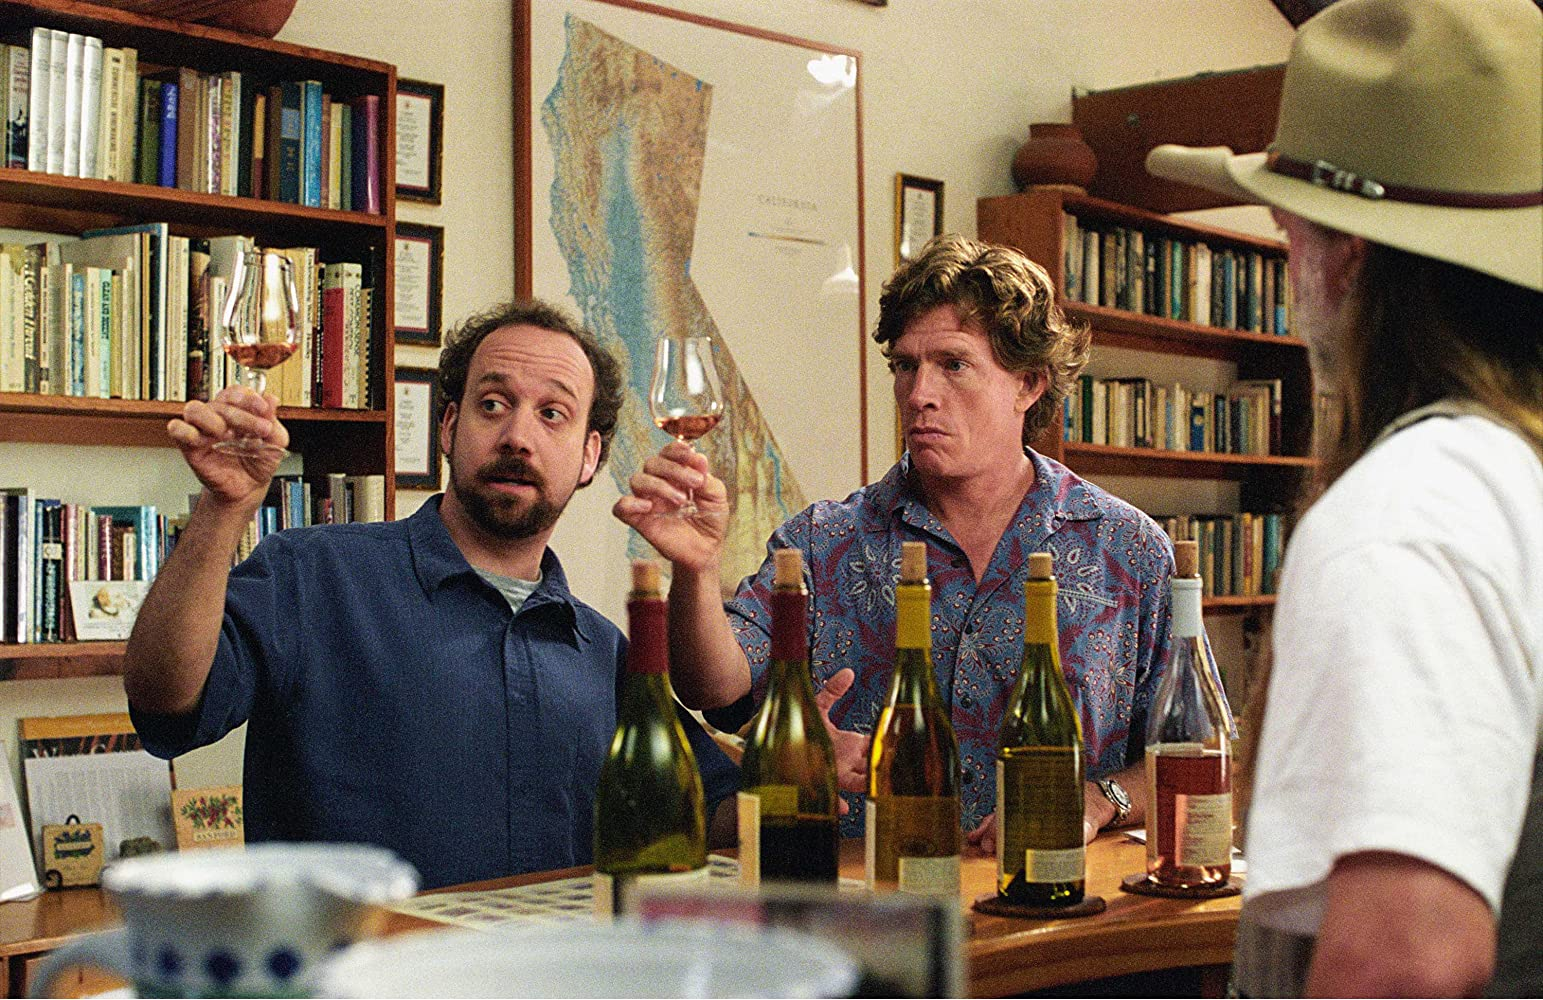 Thomas Haden Church and Paul Giamatti in Sideways (2004)